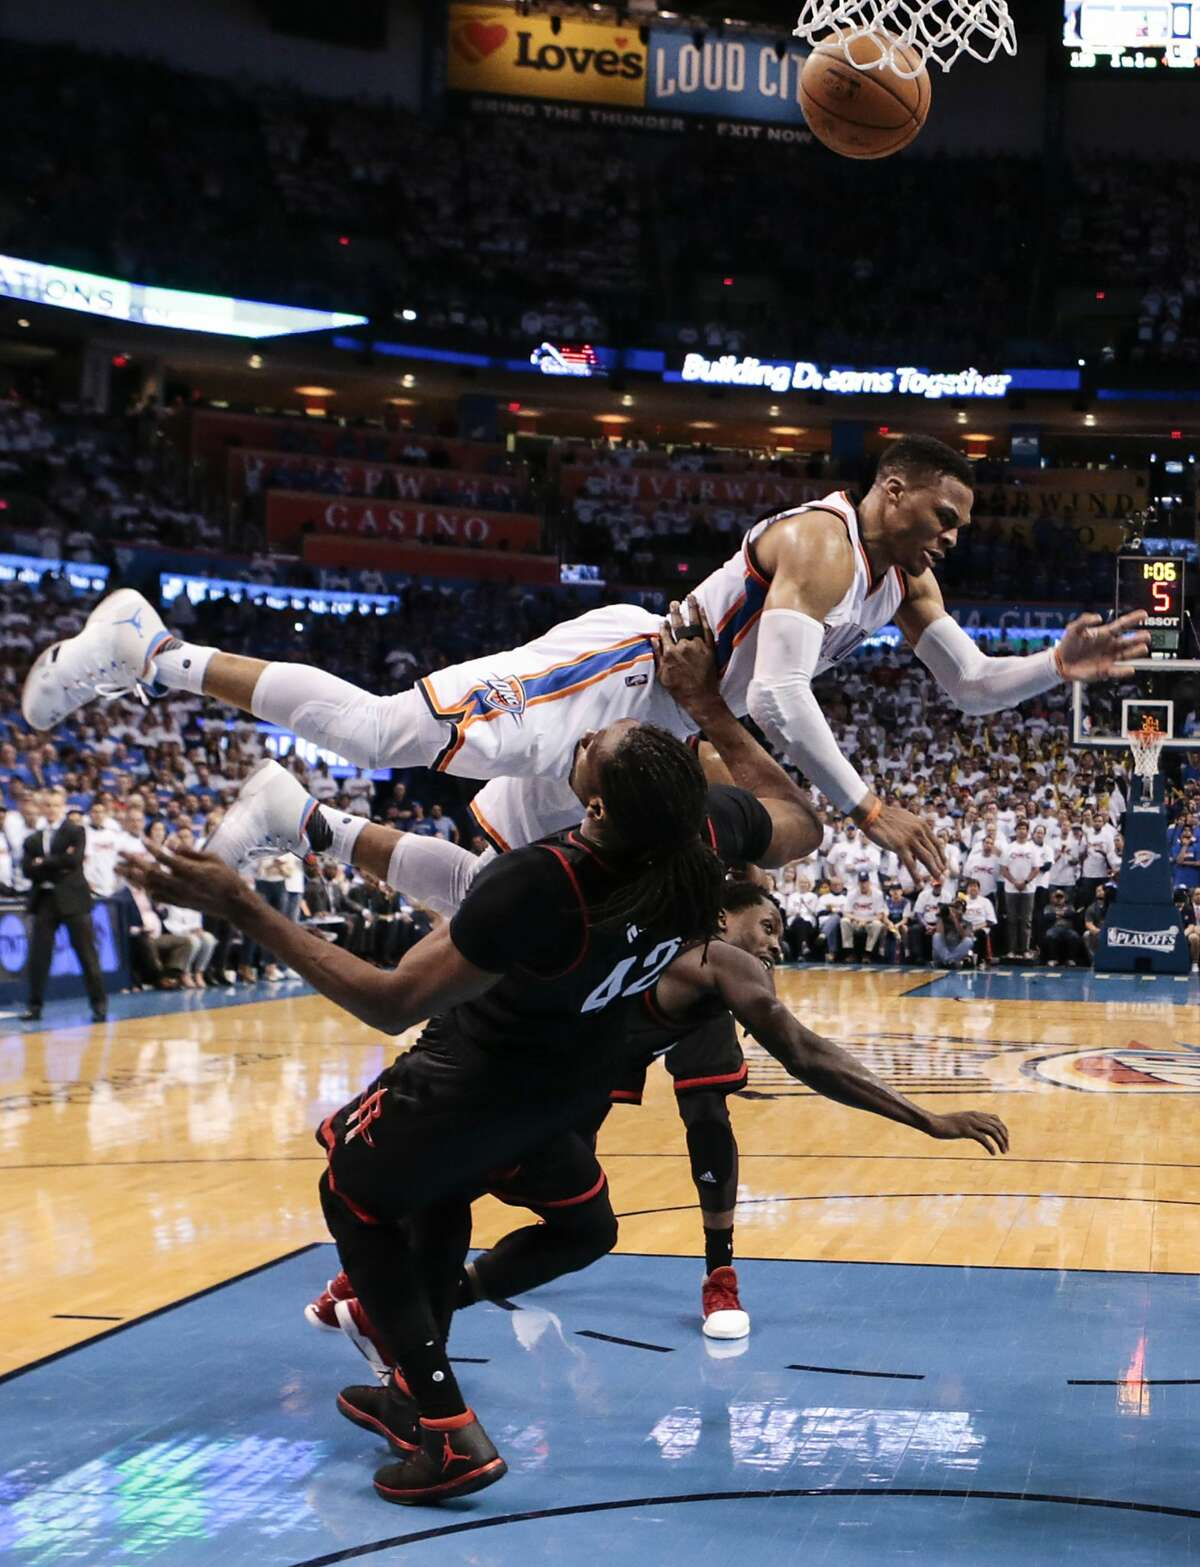 Oklahoma City Thunder guard Russell Westbrook (0) slams into Houston Rockets center Nene (42) to draw a fould during the second half of Game 3 of the NBA Western Conference first-round playoff series at Chesapeake Energy Arena on Friday, April 21, 2017, in Oklahoma City. The Thunder beat the Rockets 115-113. The Rockets lead the best-of-seven series 2-1. ( Brett Coomer / Houston Chronicle )